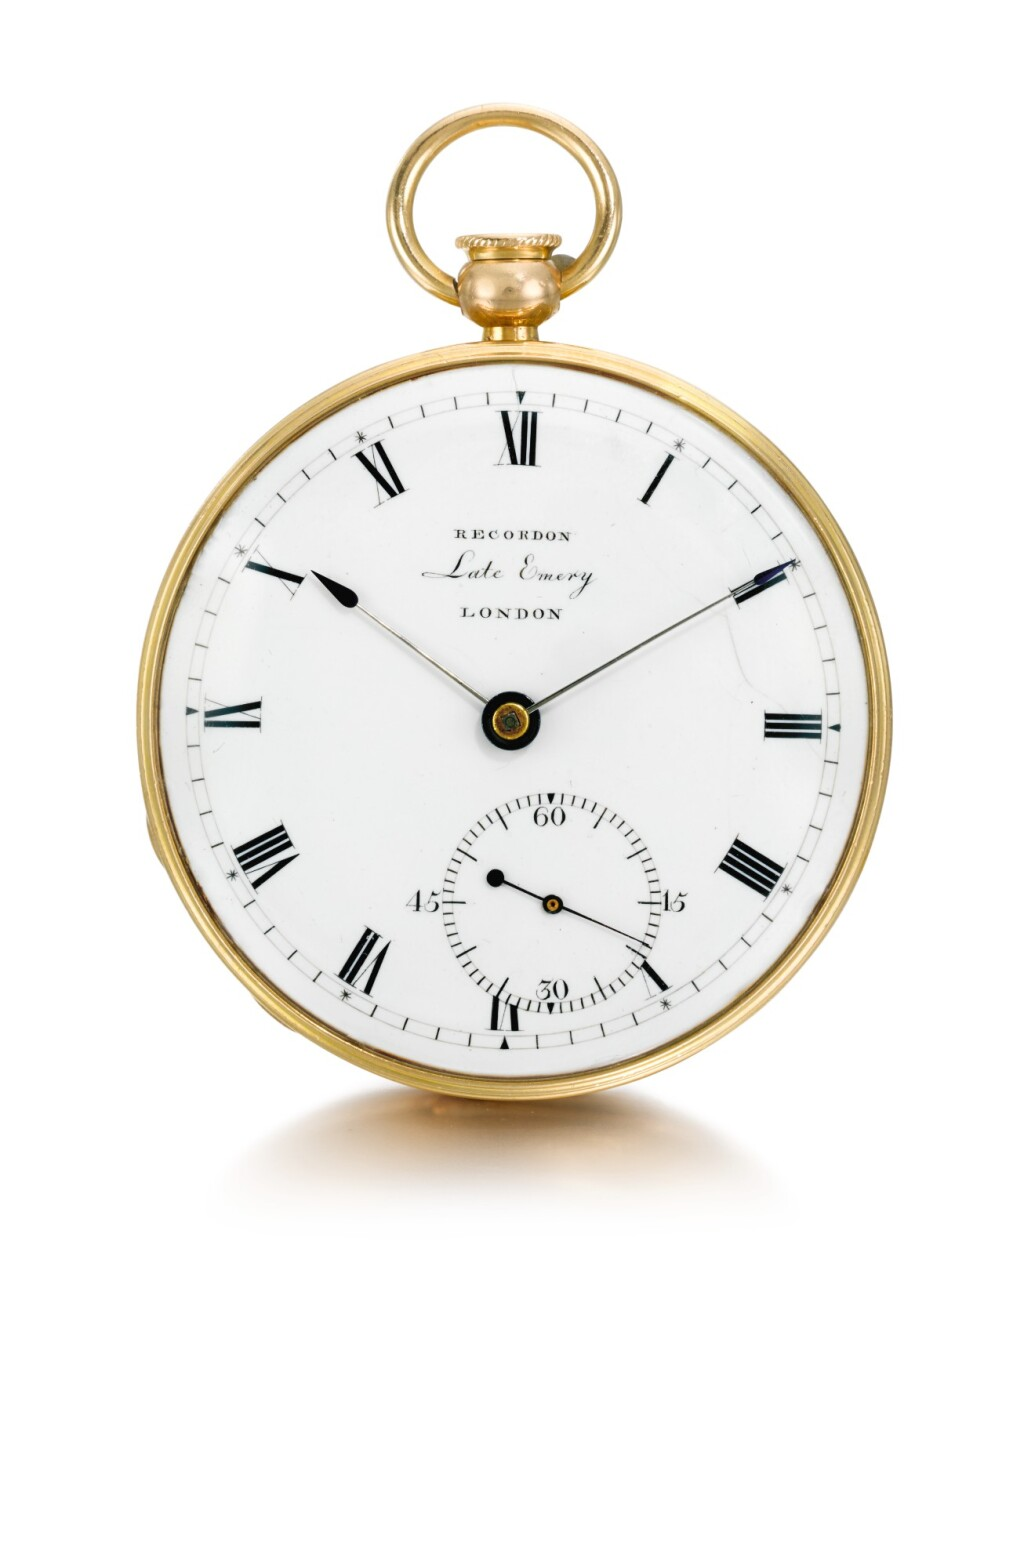 RECORDON, LATE EMERY, LONDON | A PINK GOLD OPEN-FACED DUMB QUARTER REPEATING WATCH  1806, NO. 8932